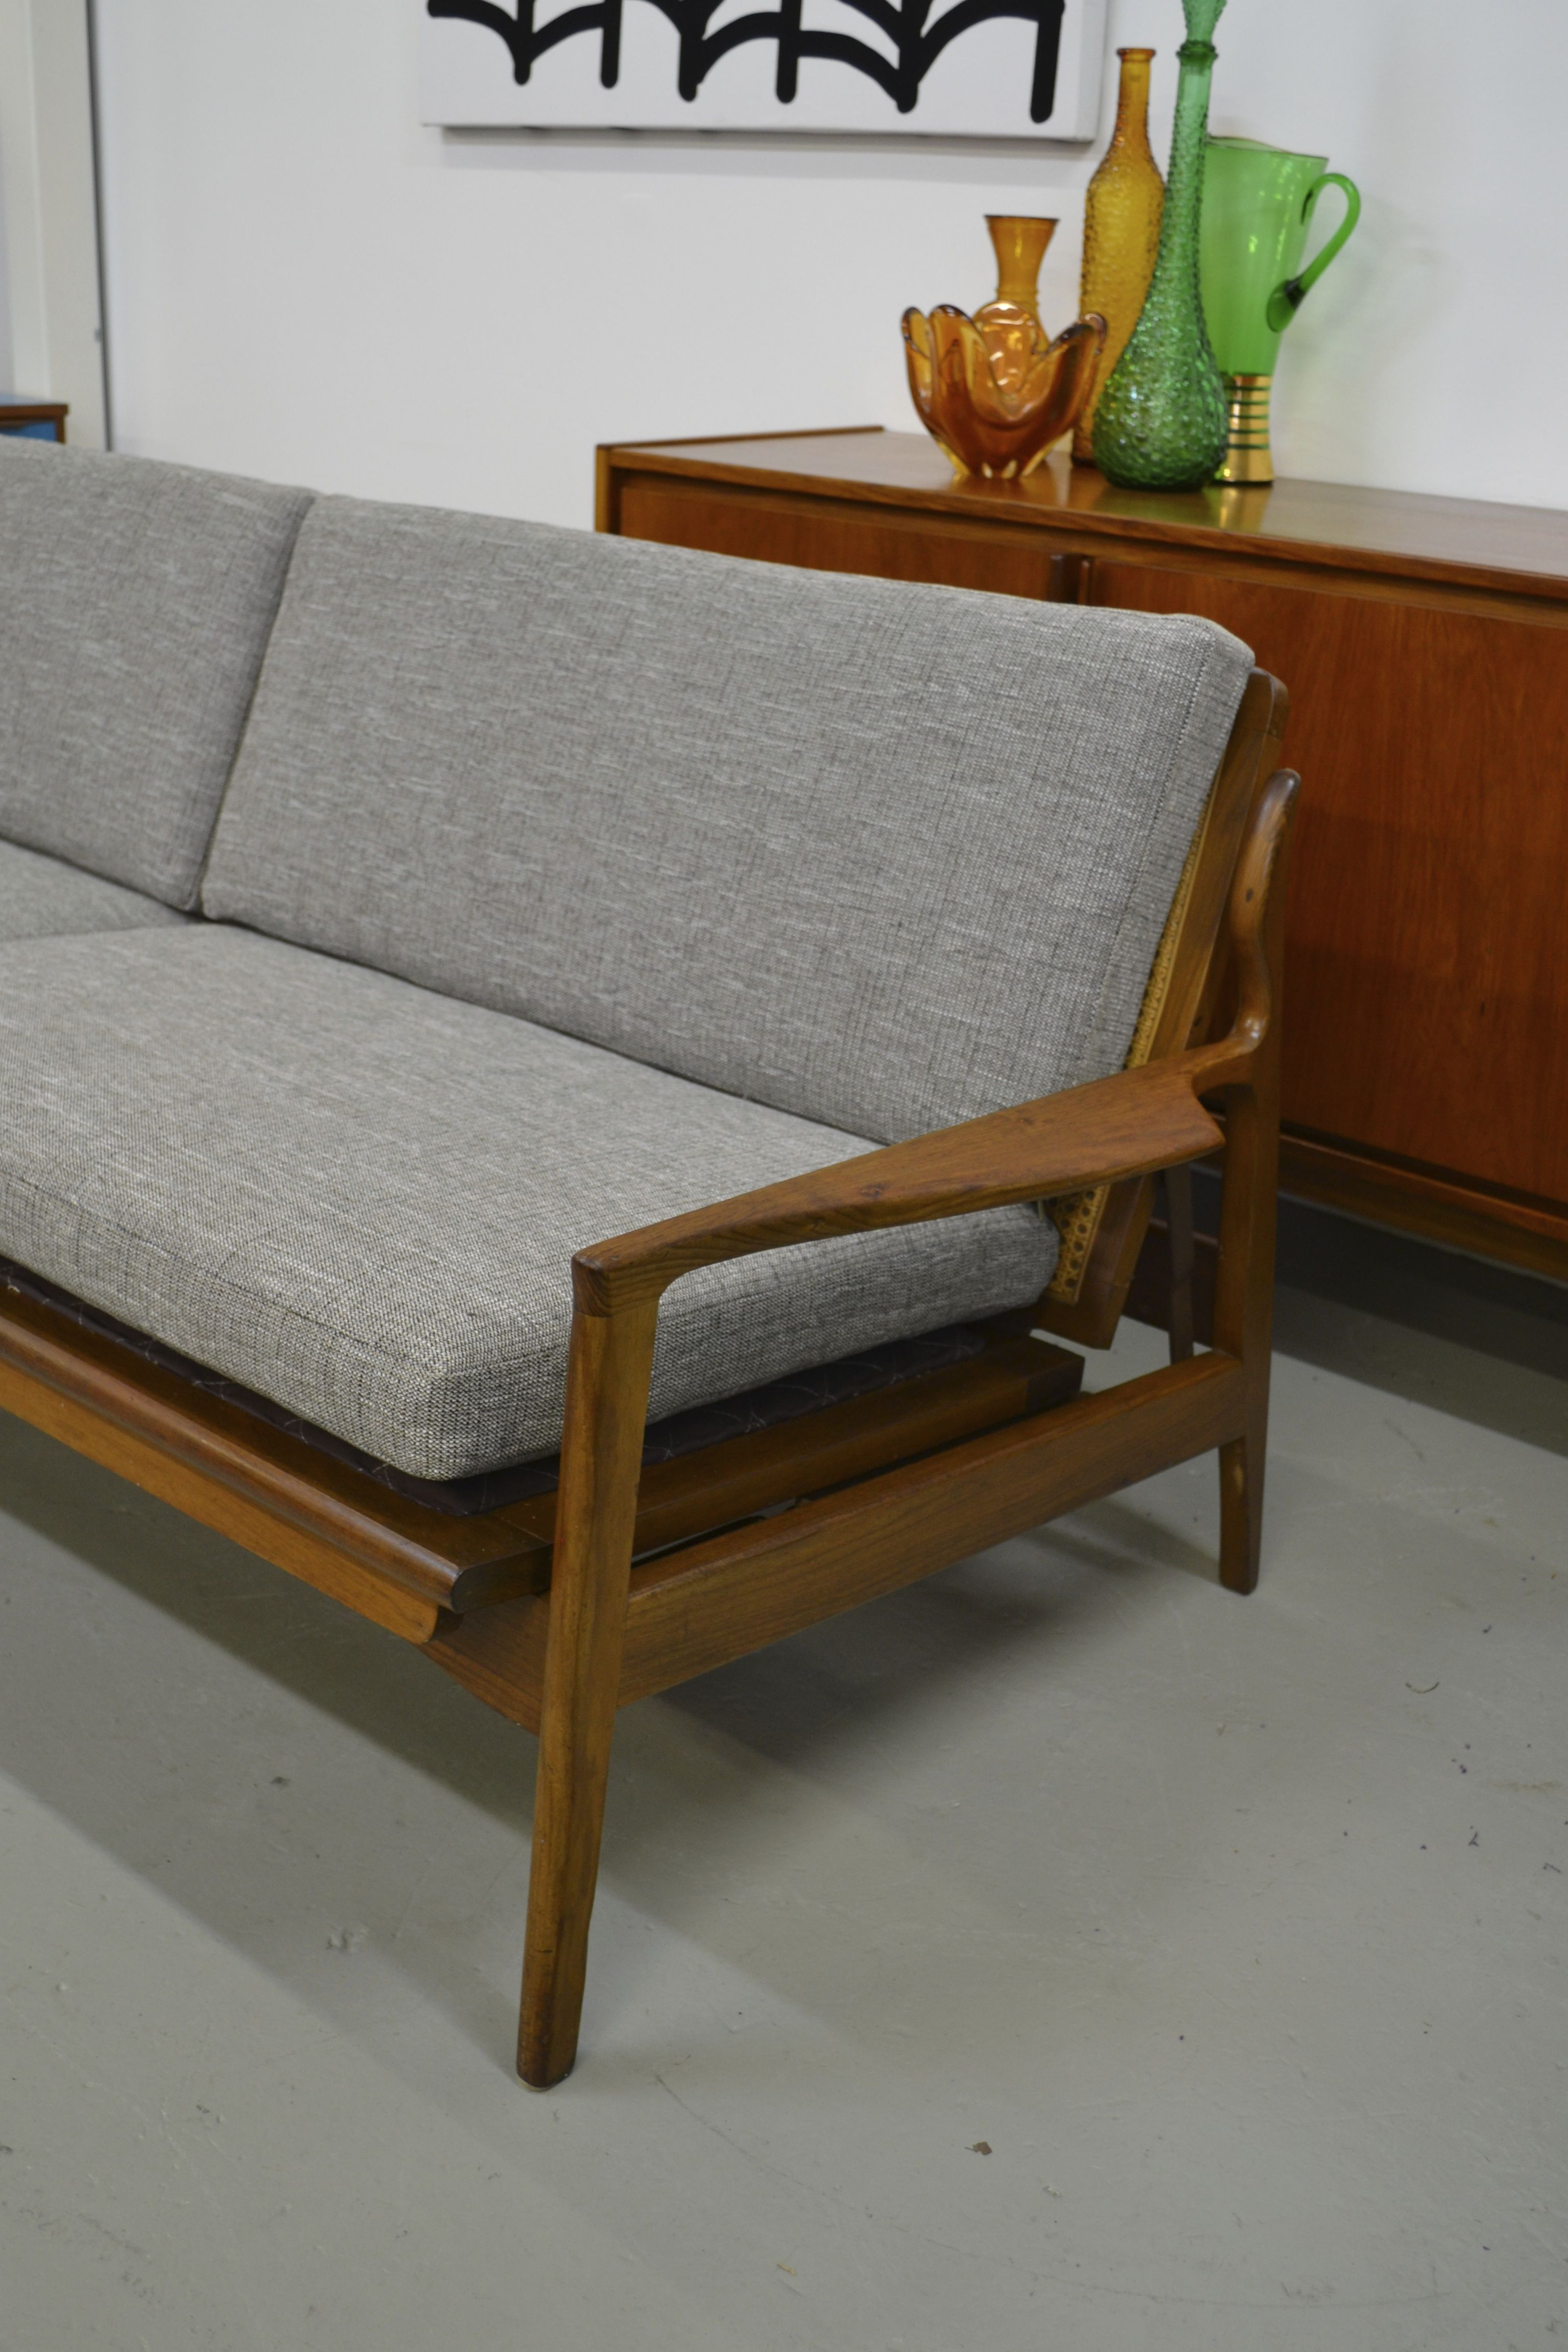 60s Furniture Styles Fred Lowen Designed Fler Lounge Sofa Bed T And T Sells